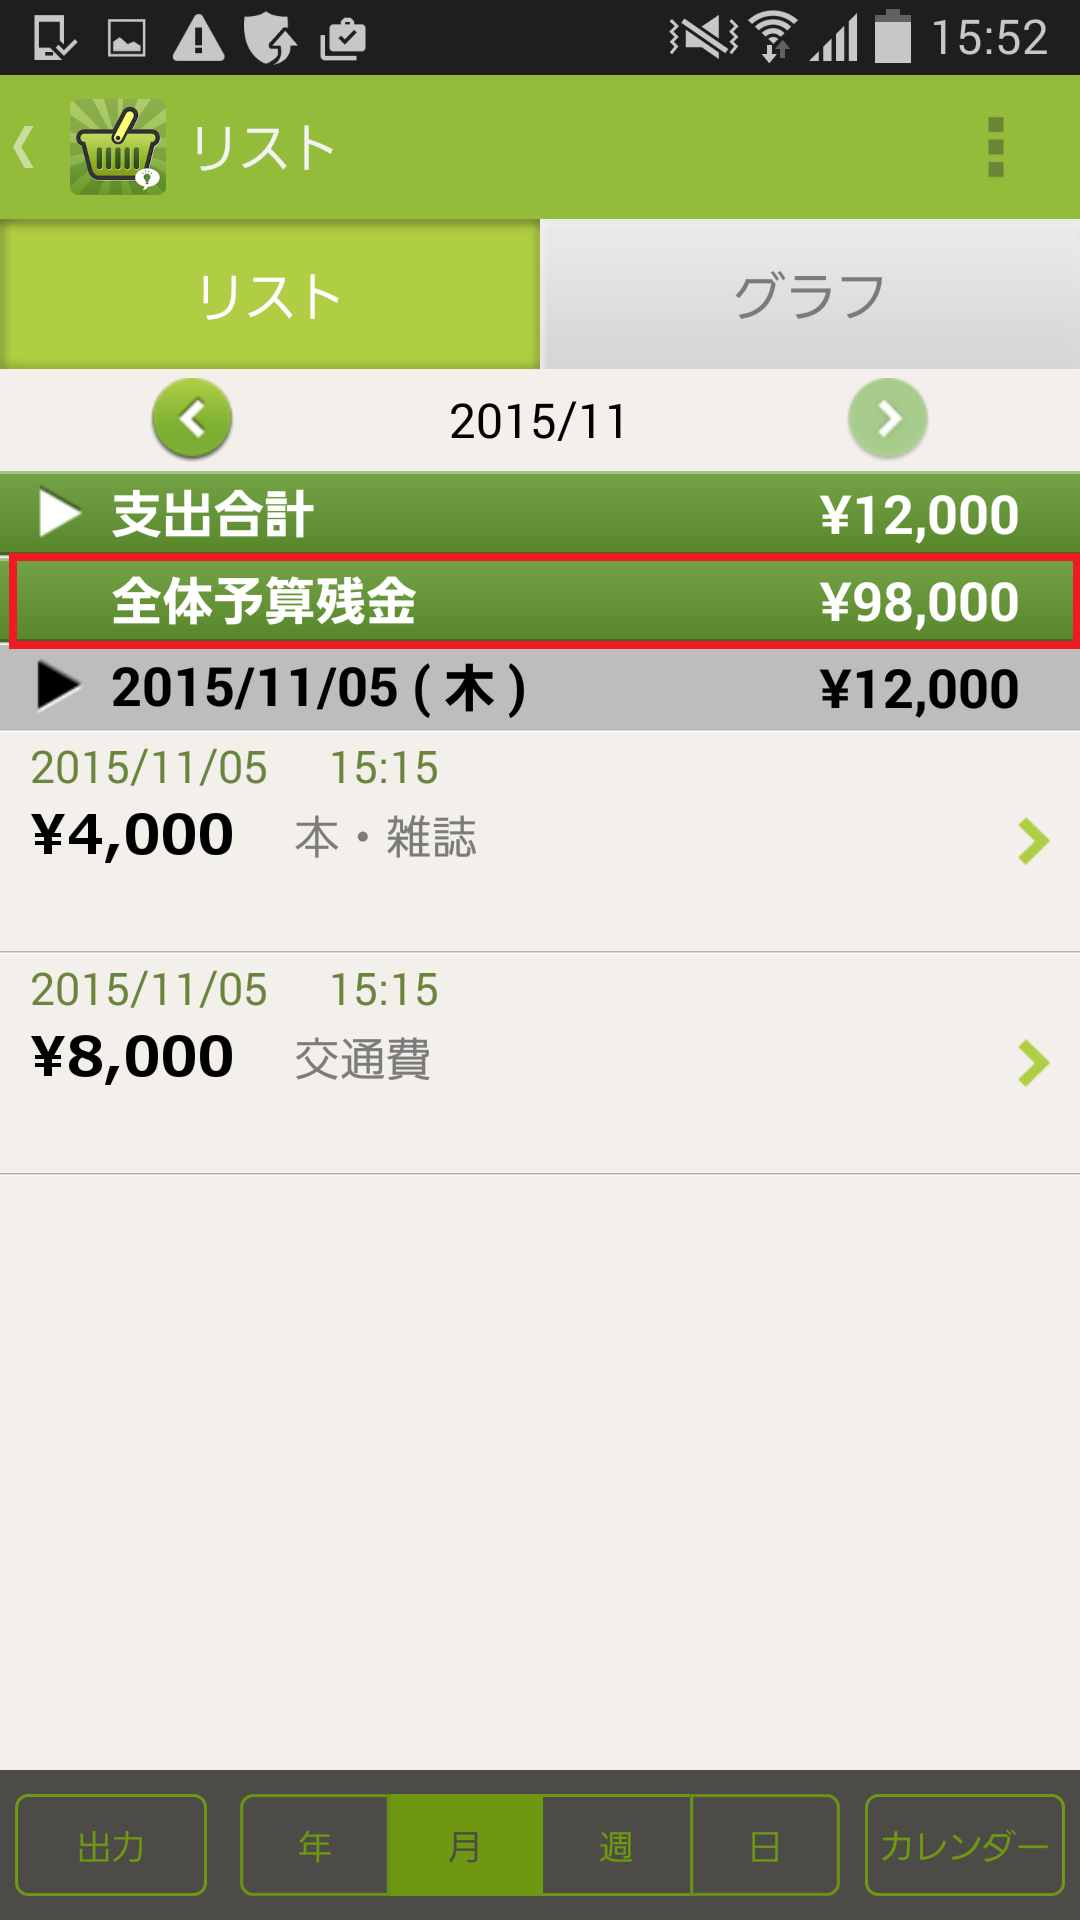 Android_全体予算05